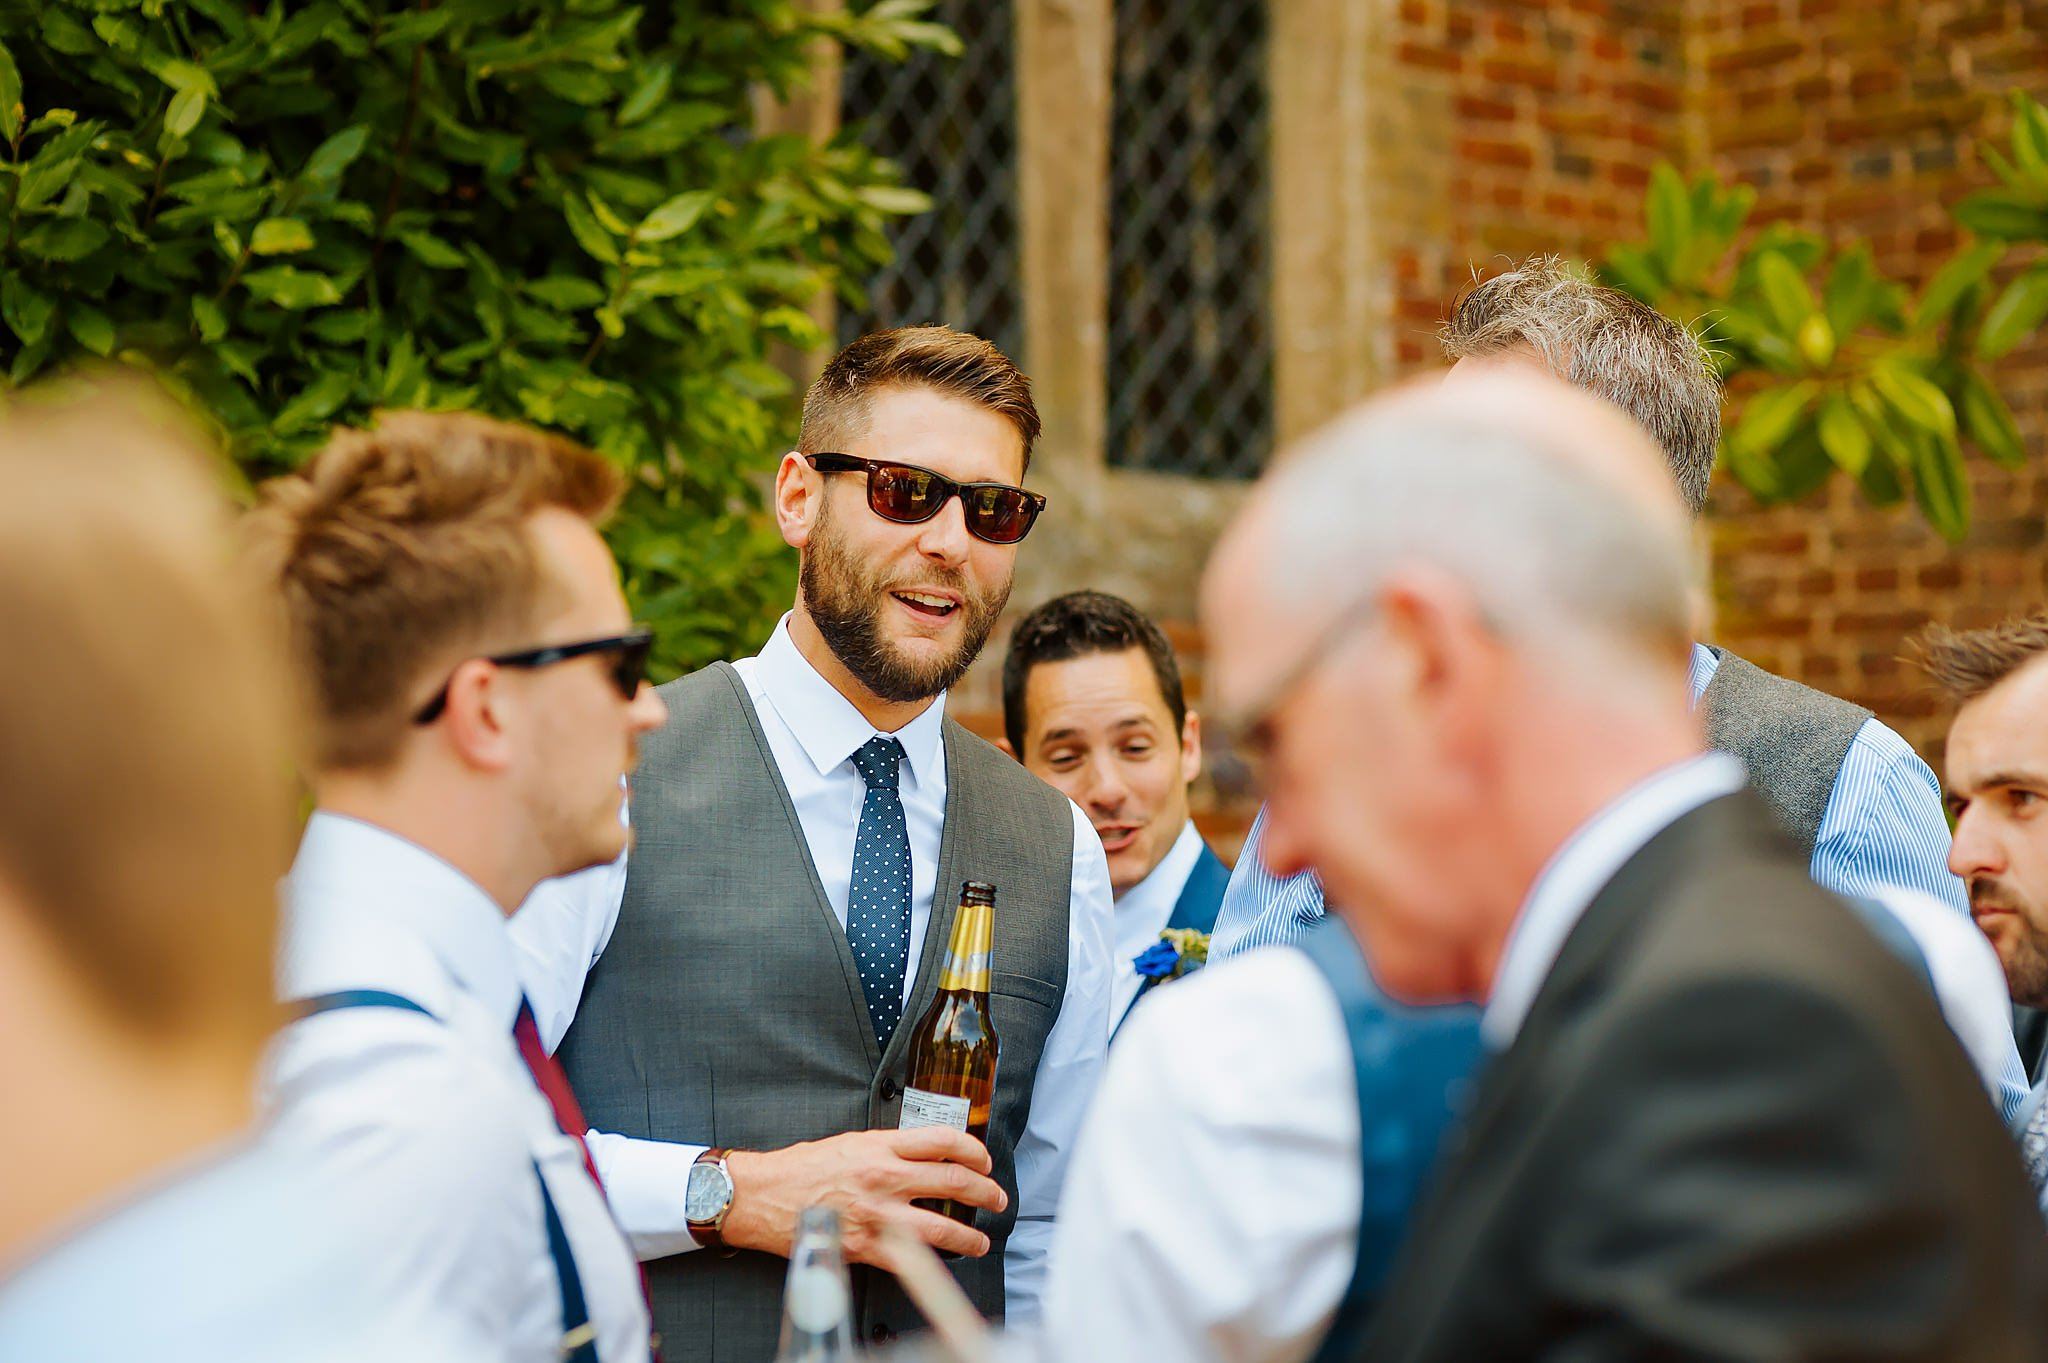 Wedding photography at Hellens Manor in Herefordshire, West Midlands | Shelley + Ian 45